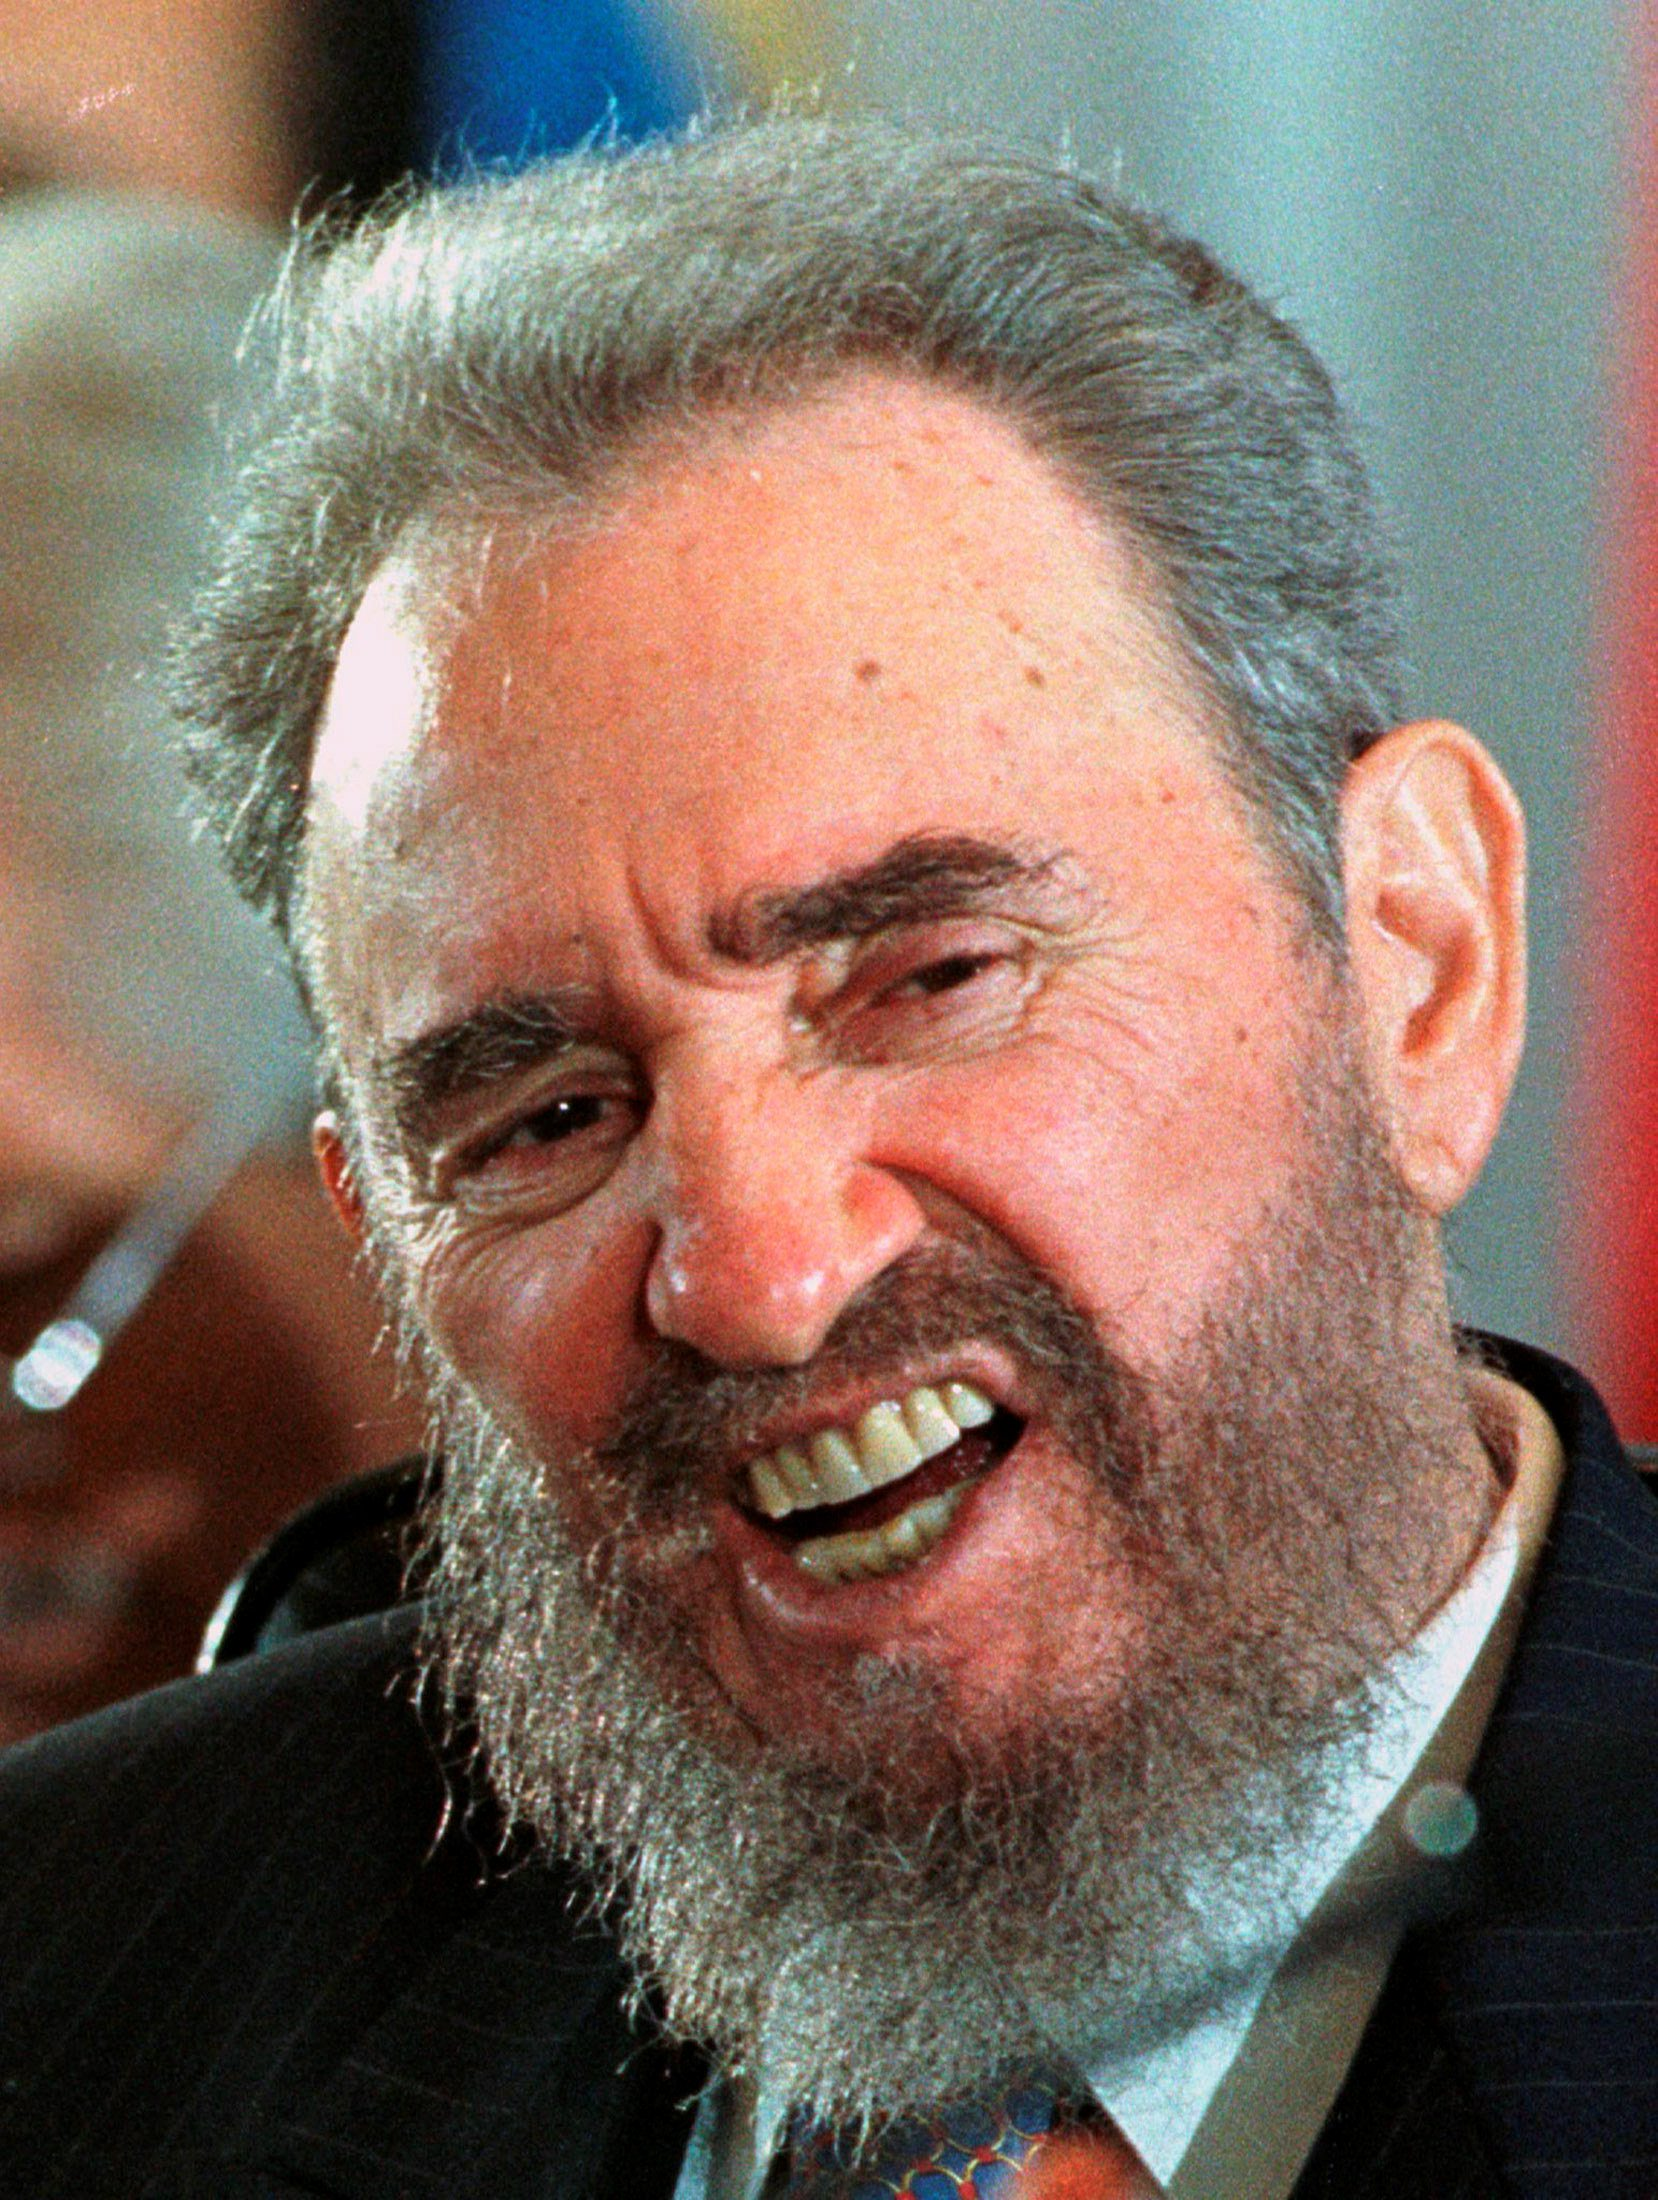 Then Cuban President Fidel Castro fights a yawn on the first day of the VII Ibero-American summit on Margarita Island in this November 8, 1997 file photo. REUTERS/Andrew Winning/File Photo